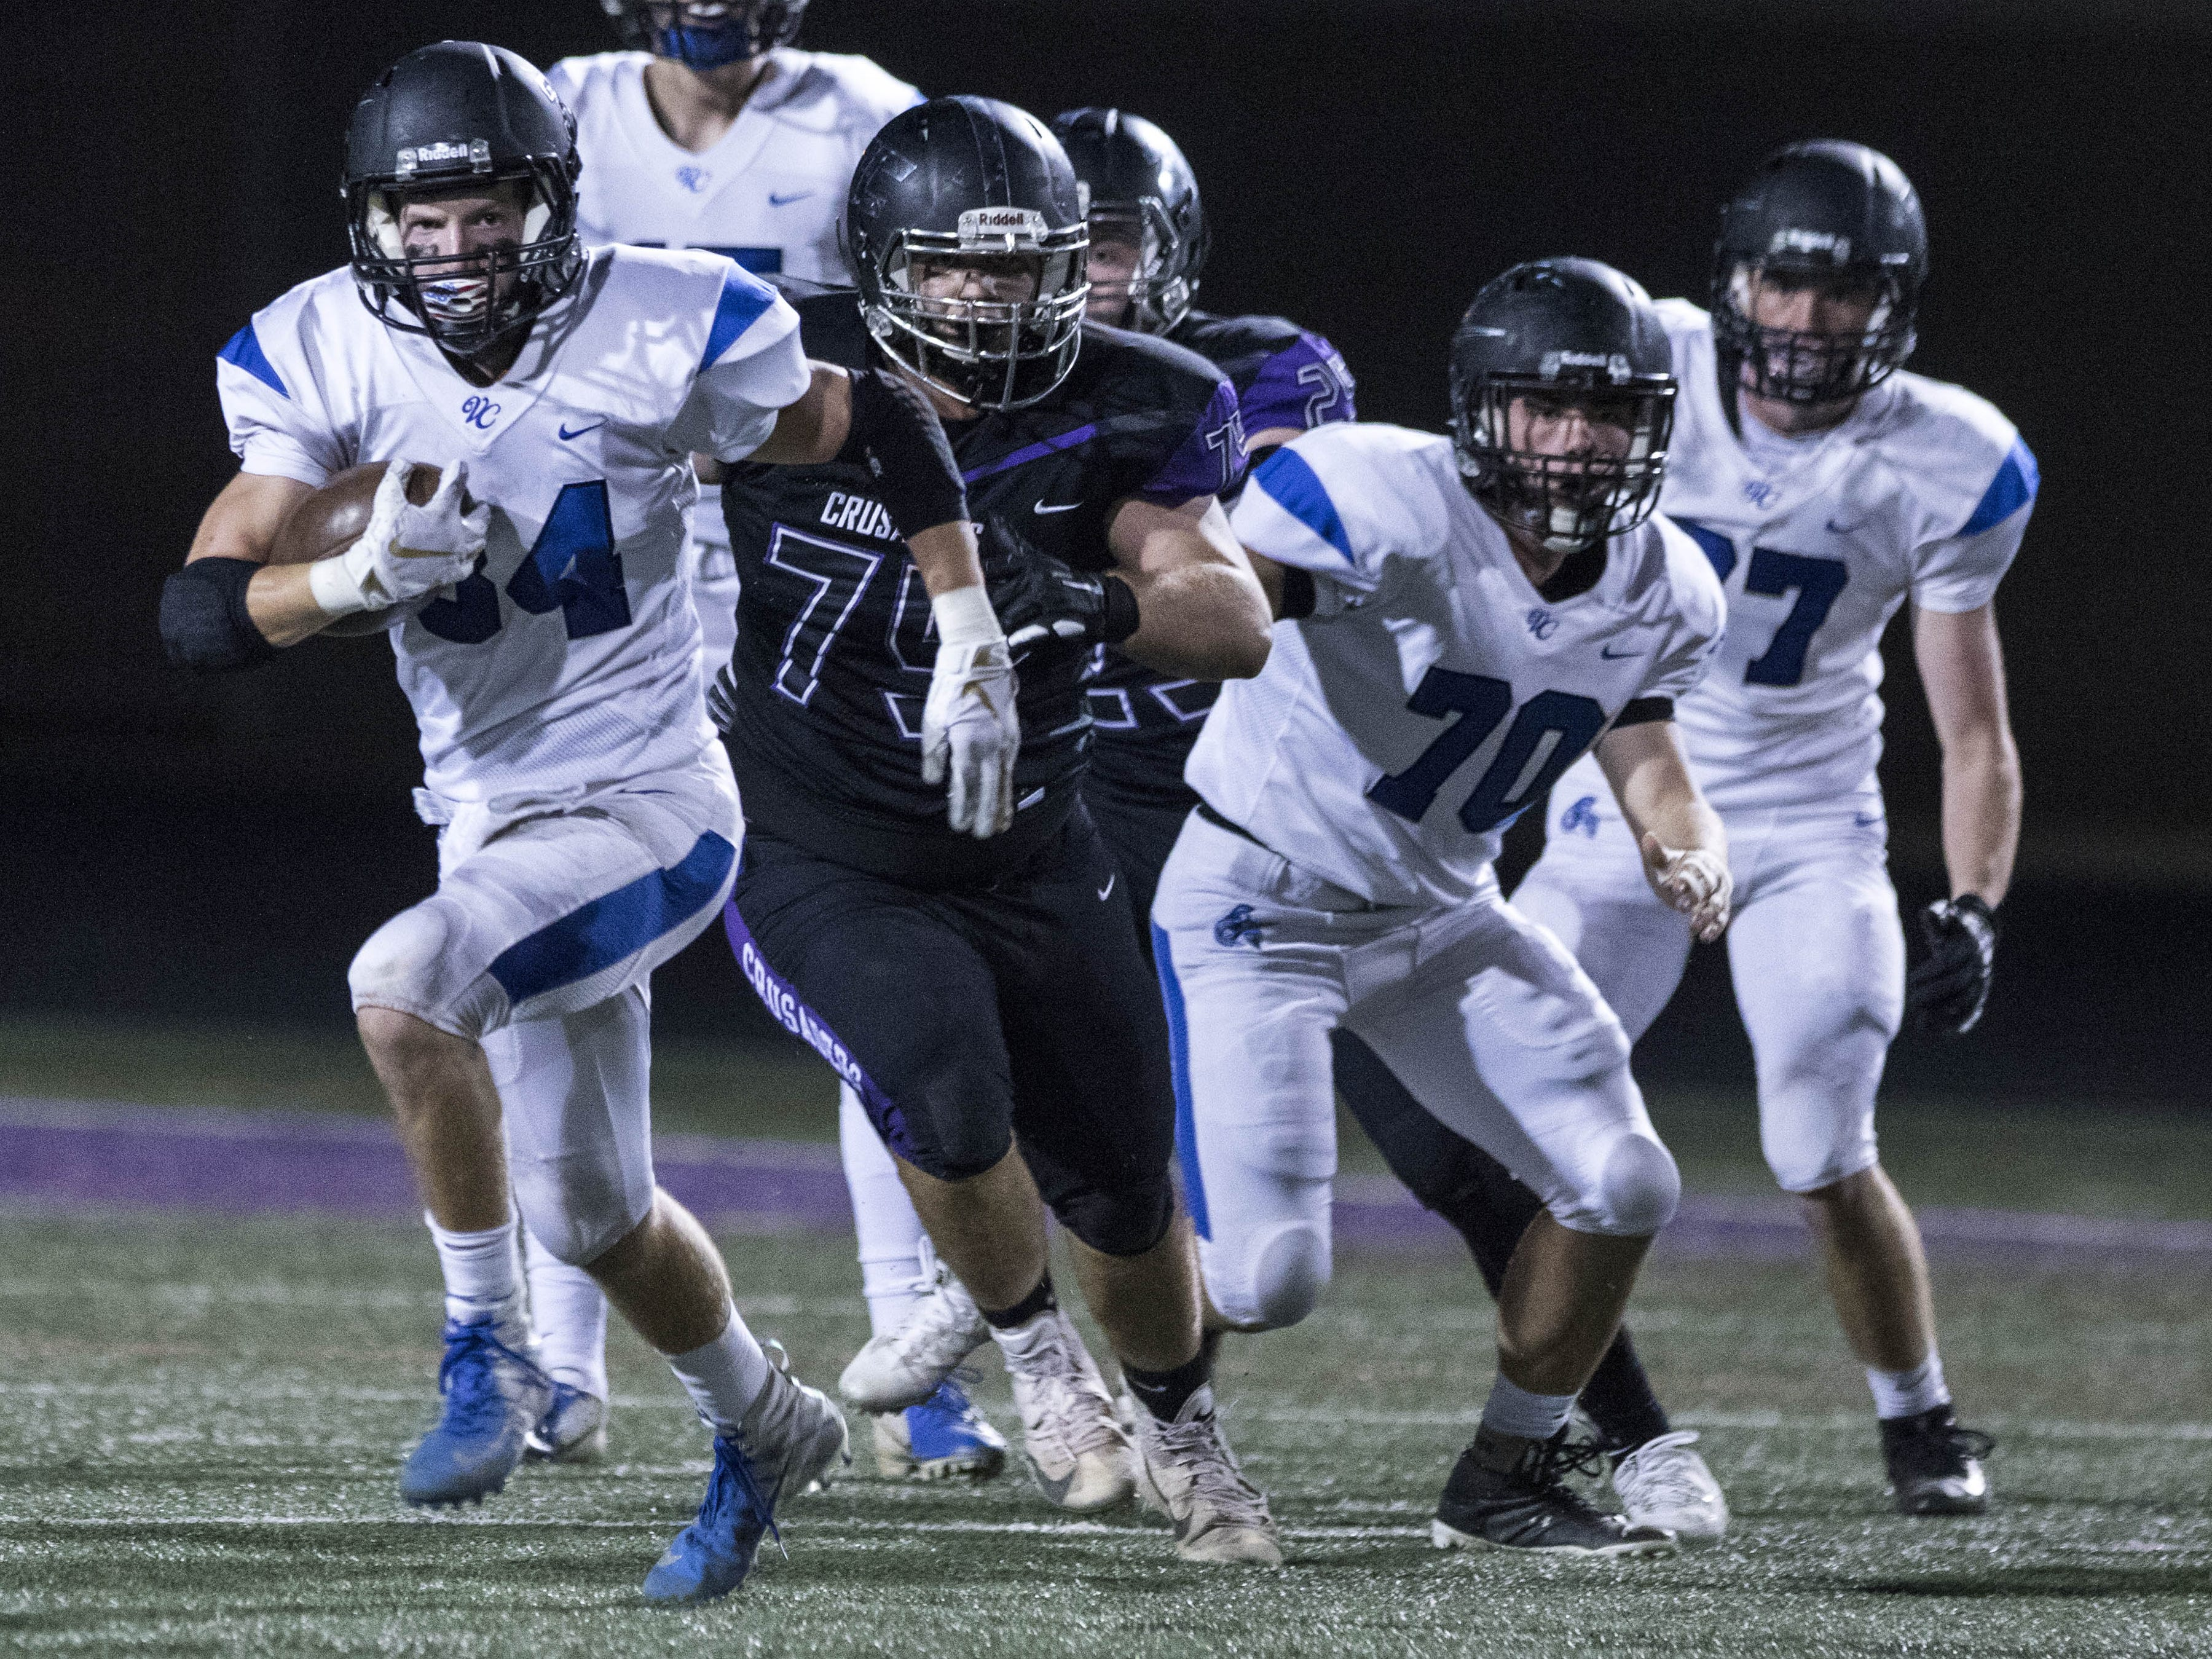 Valley Christian's Nathan Dykstra (34) finds running room against Northwest Christian during their game at North Canyon High School in Phoenix  Friday, Nov.17, 2018. #azhsfb